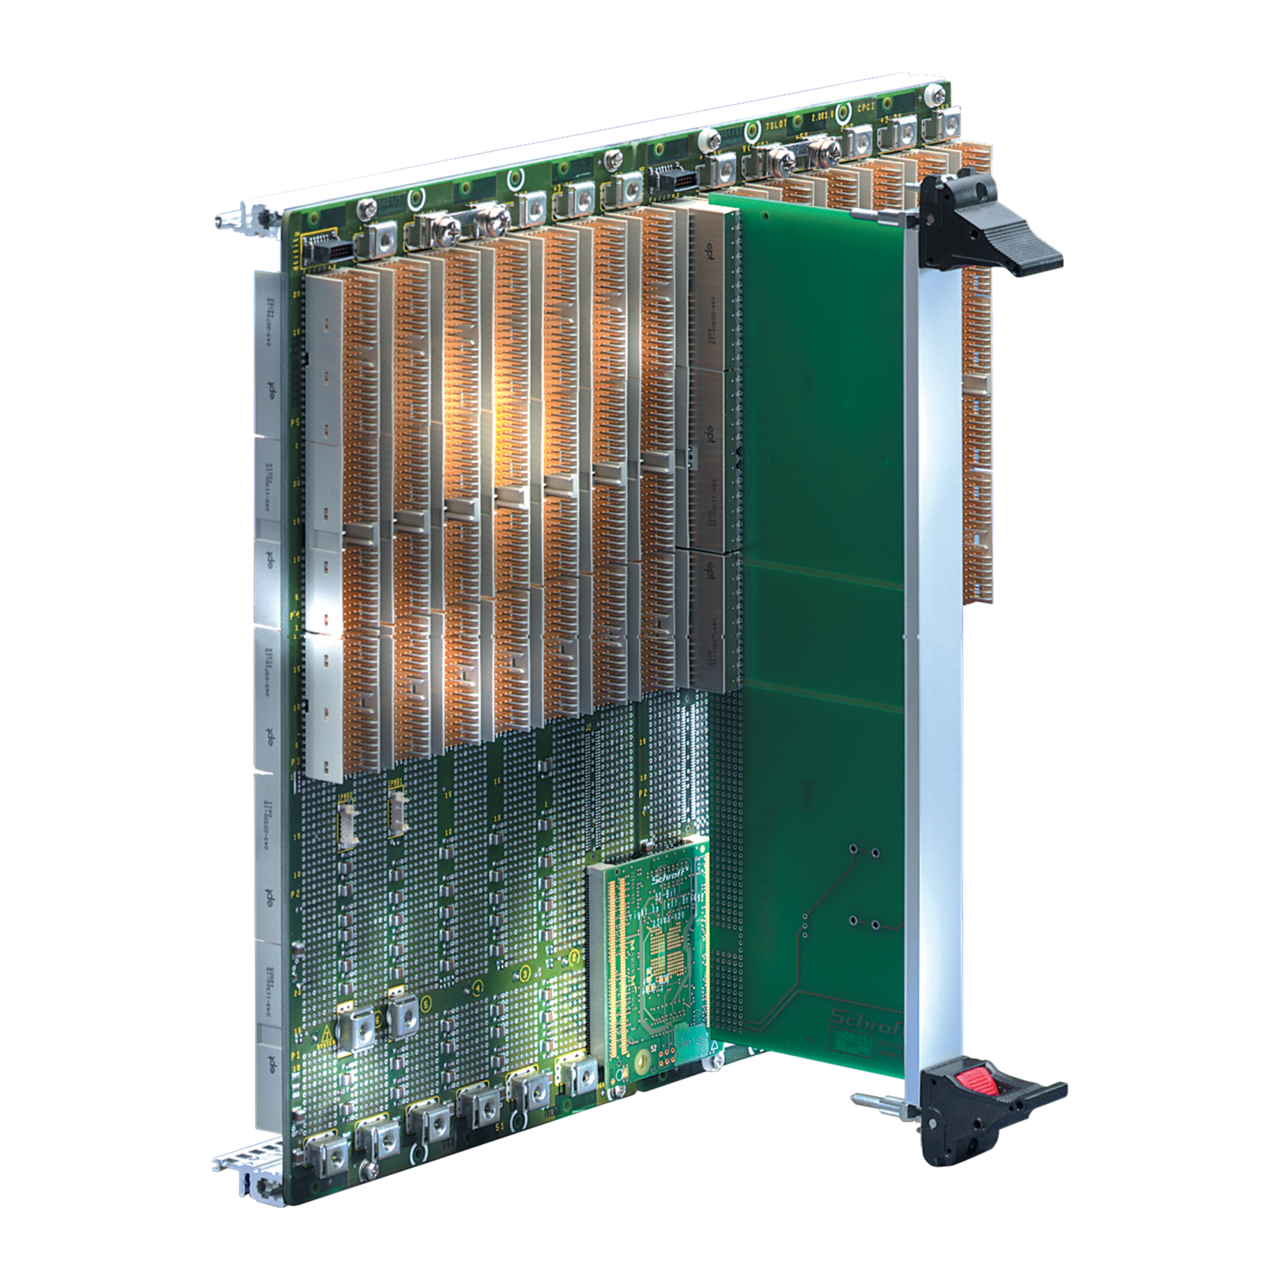 Image for CPCI backplanes secondary, system slot to right from nVent SCHROFF | Europe, Middle East, Africa and India